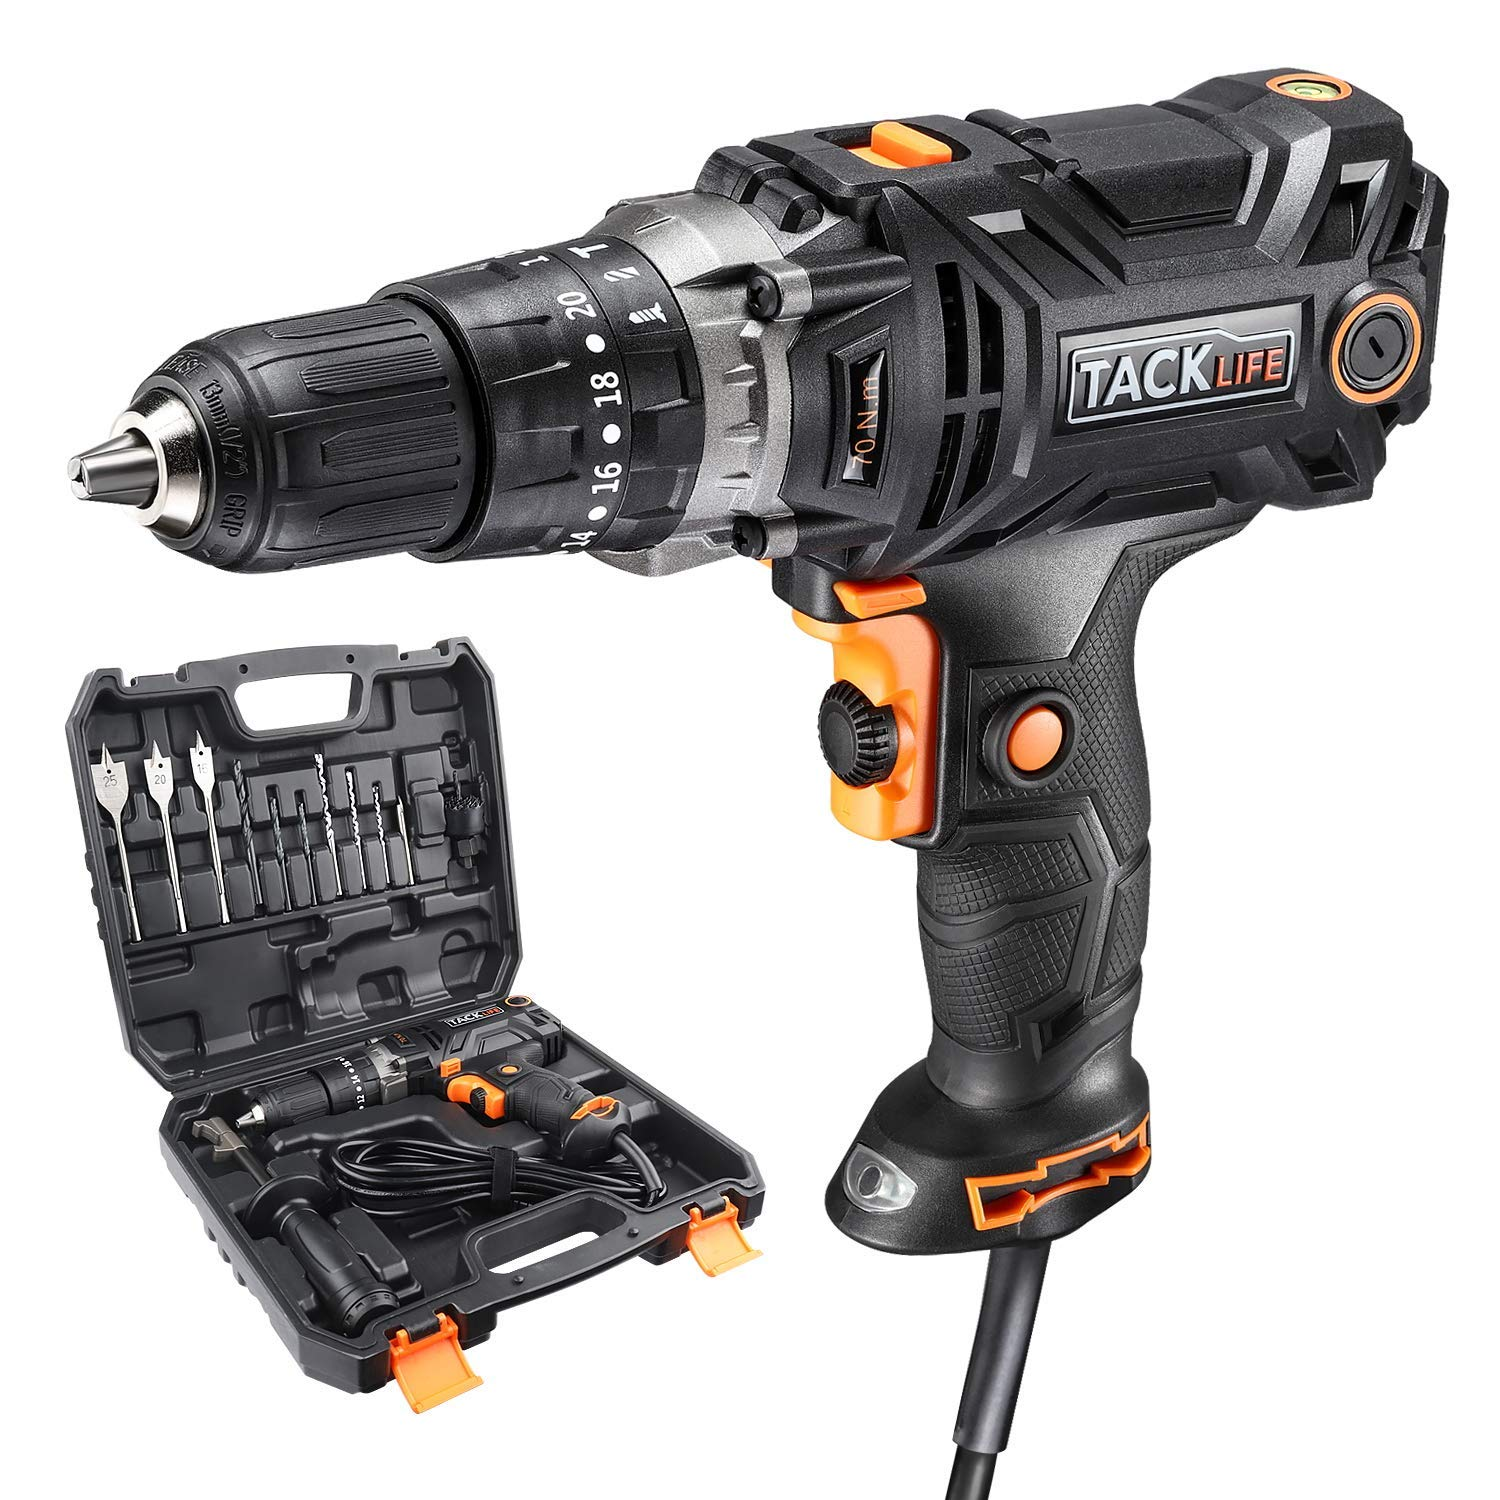 Concrete Drill, TACKLIFE Hammer Drill with 620in-lb/70N.m Torque, Hammer & Drill 3 Function in 1, Paint and Mud Mixer, with 15 Drill Bits Set, Carrying Case - PID04A